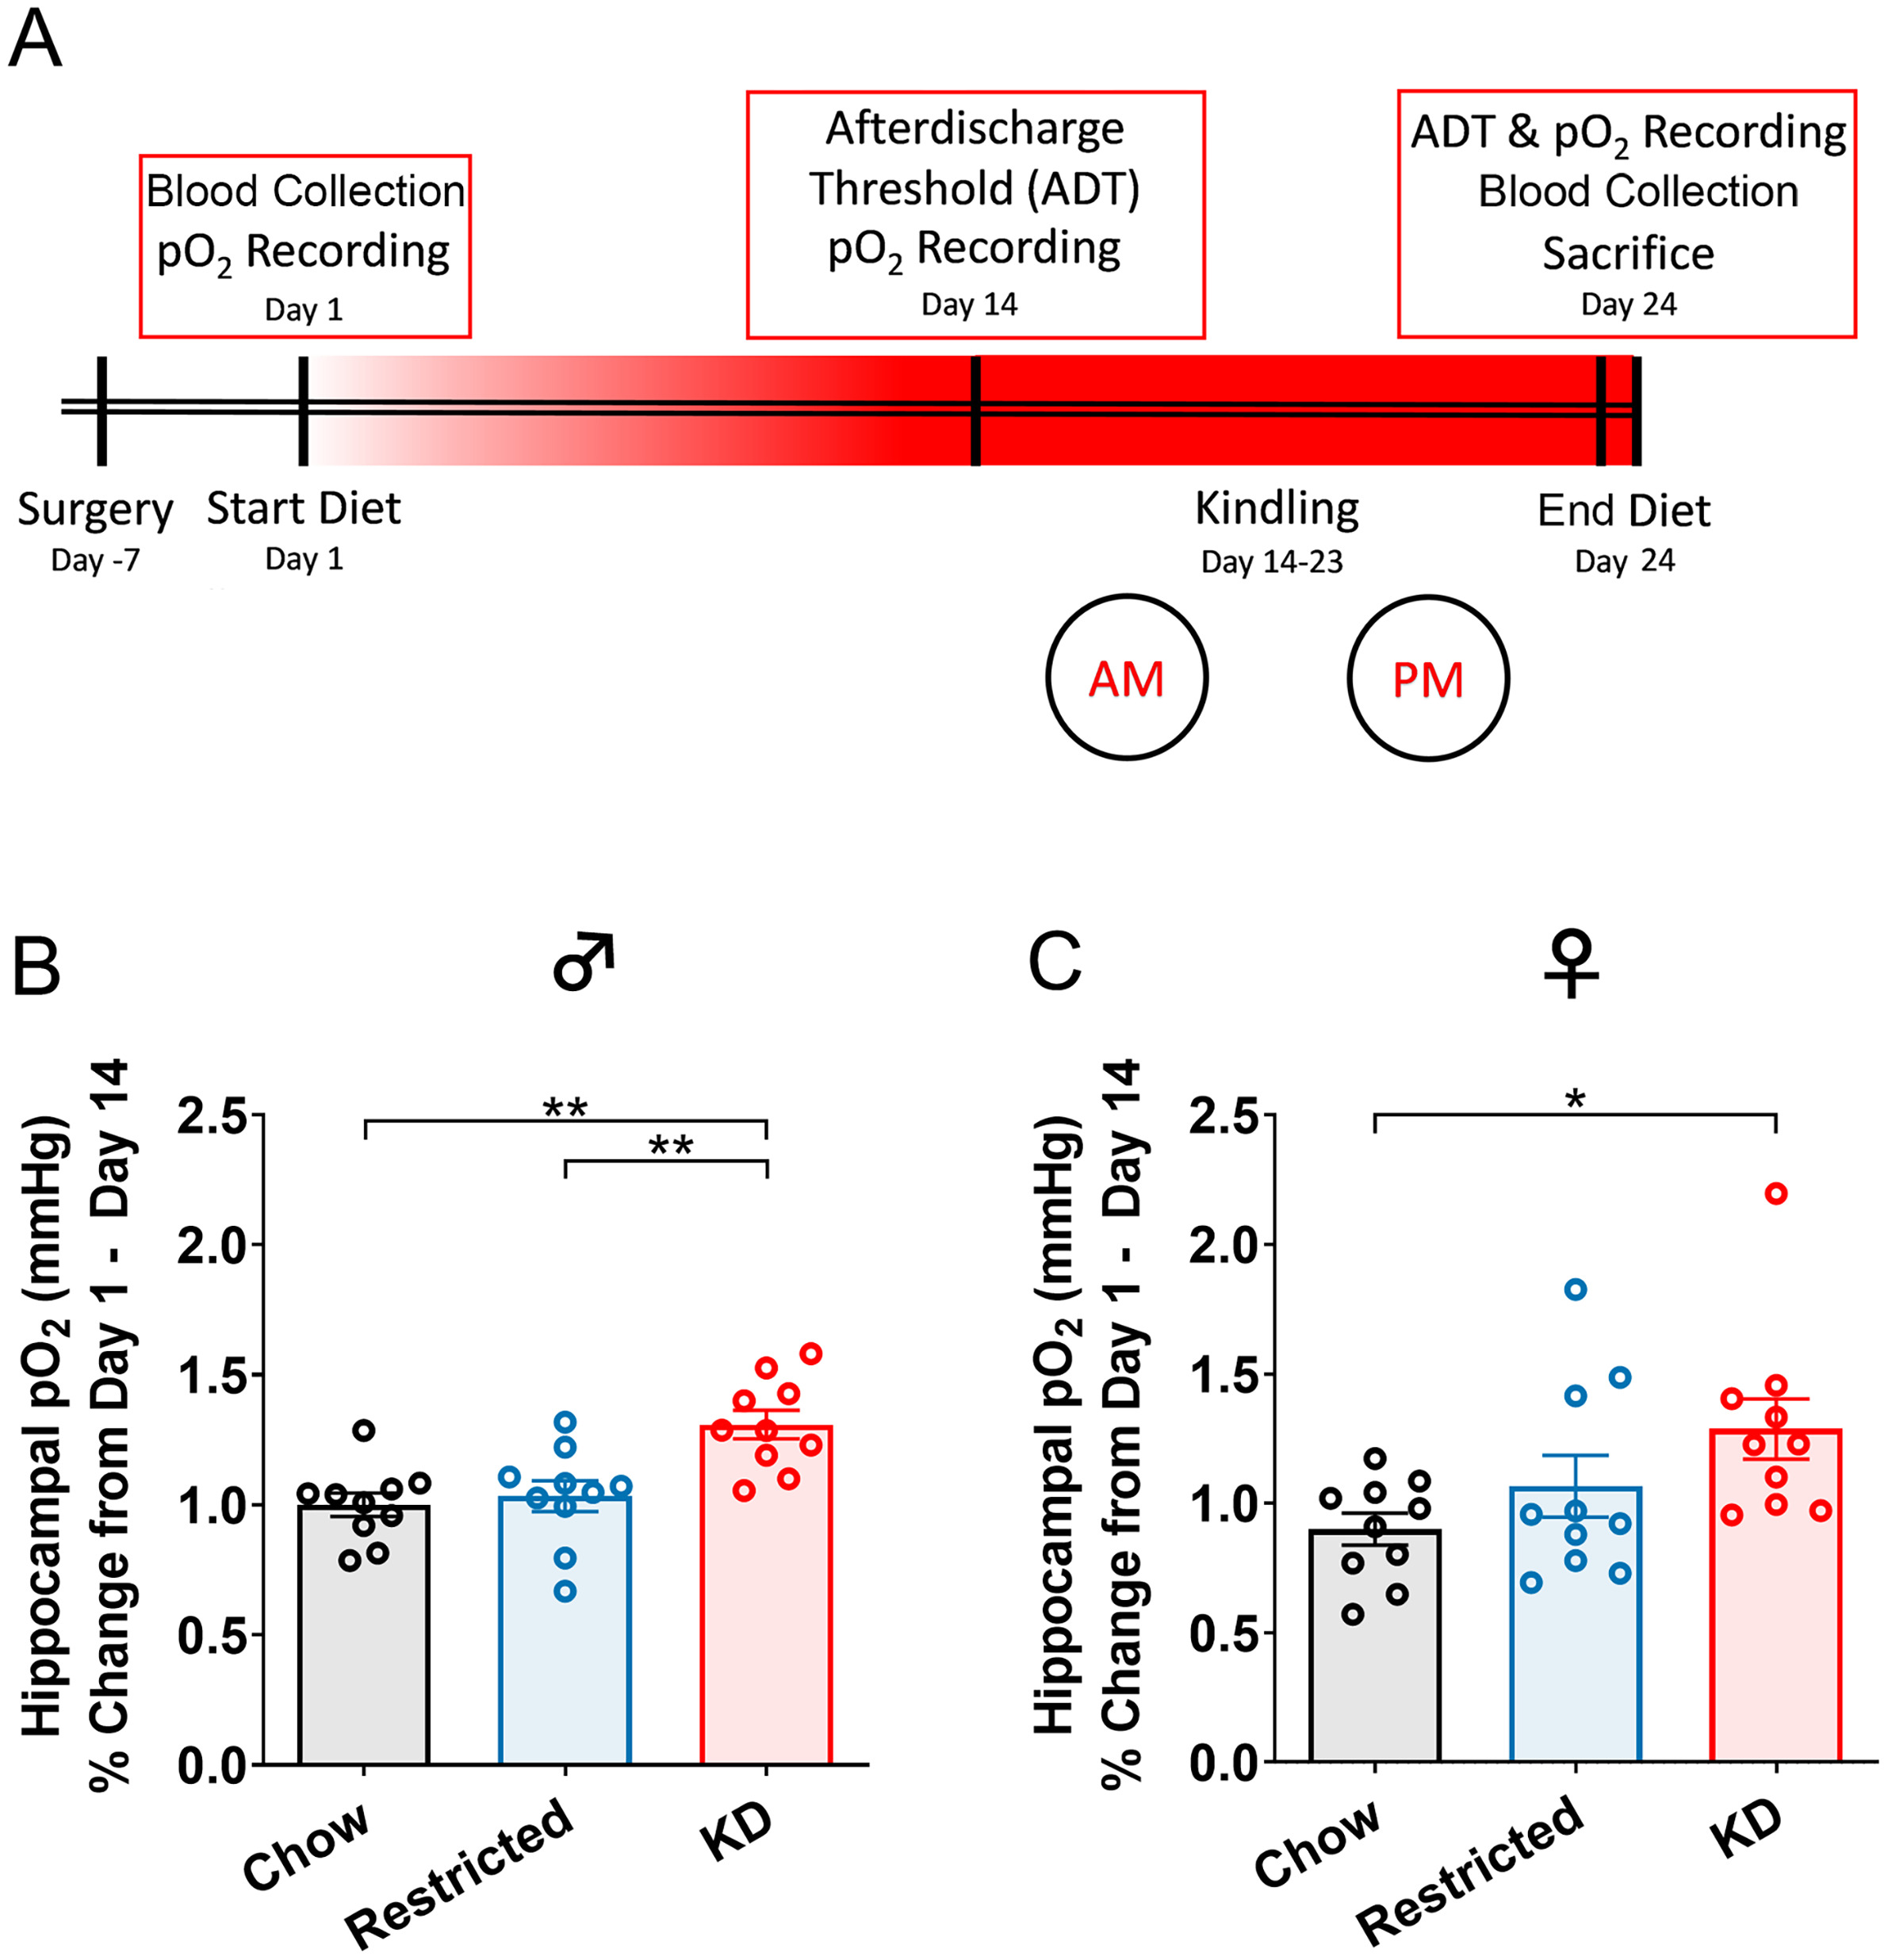 The ketogenic diet raises brain oxygen levels, attenuates postictal hypoxia, and protects against learning impairments -